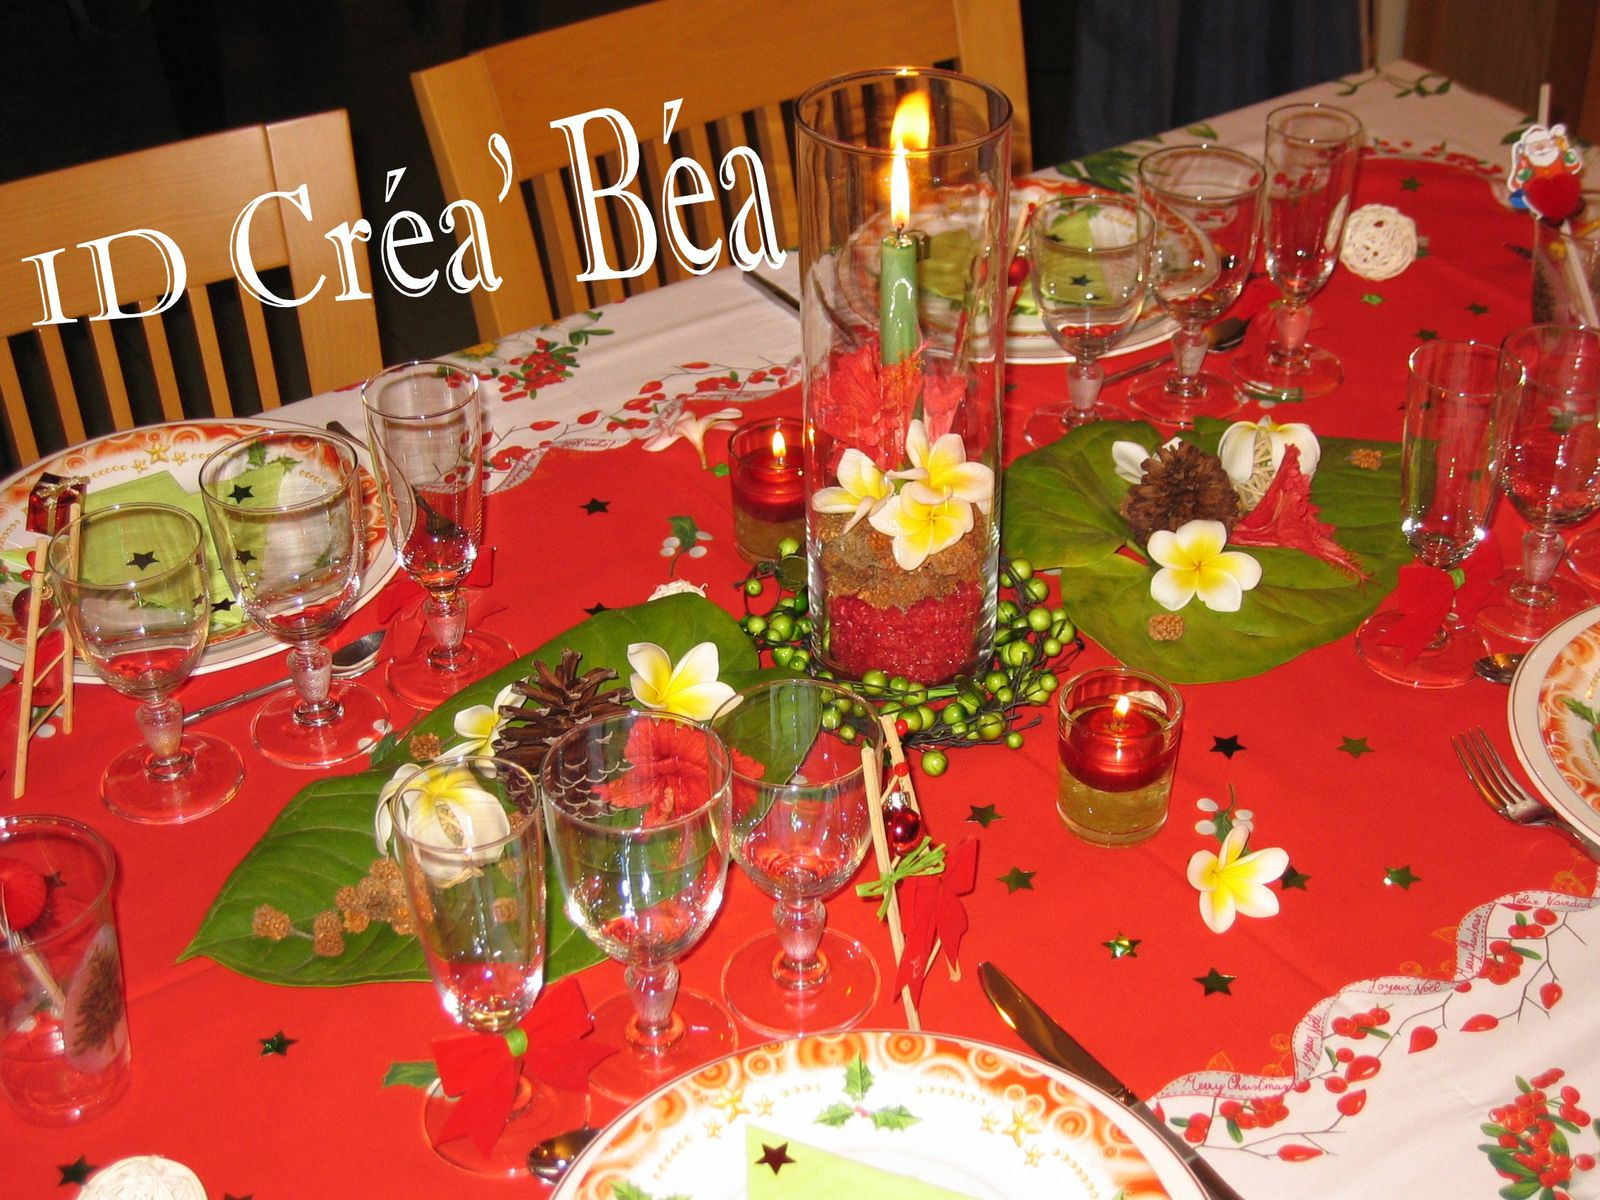 Album table noel rouge et vert id cr a 39 b a des - Decoration table de noel rouge et or ...